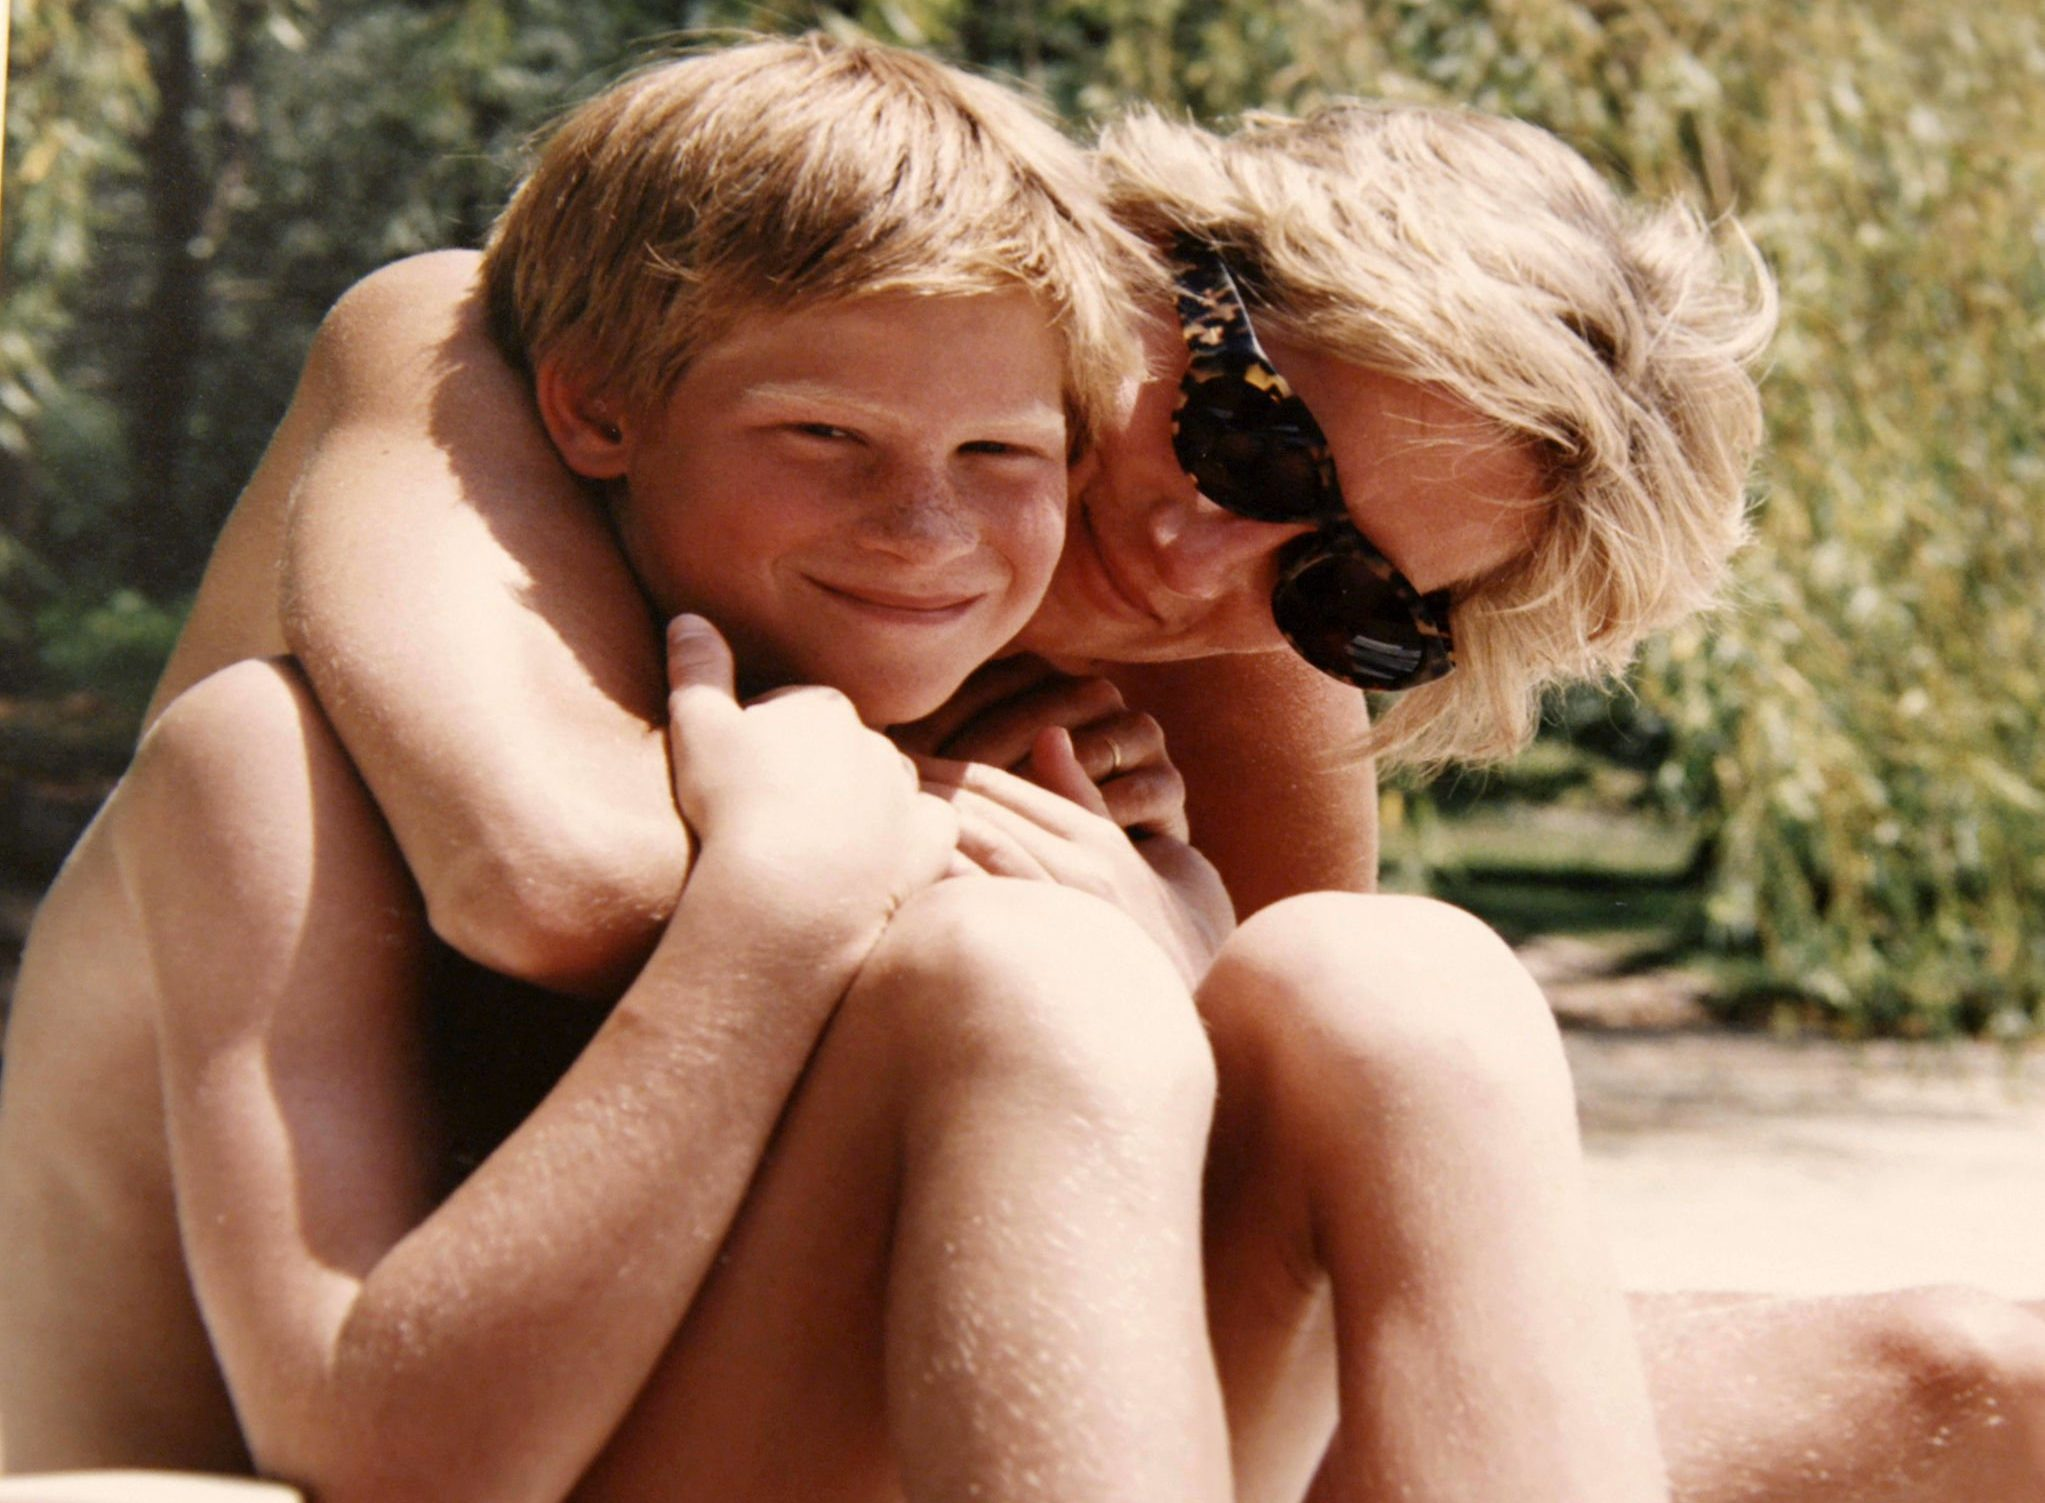 Prince Harry shown one of the last ever pictures of him with his mother